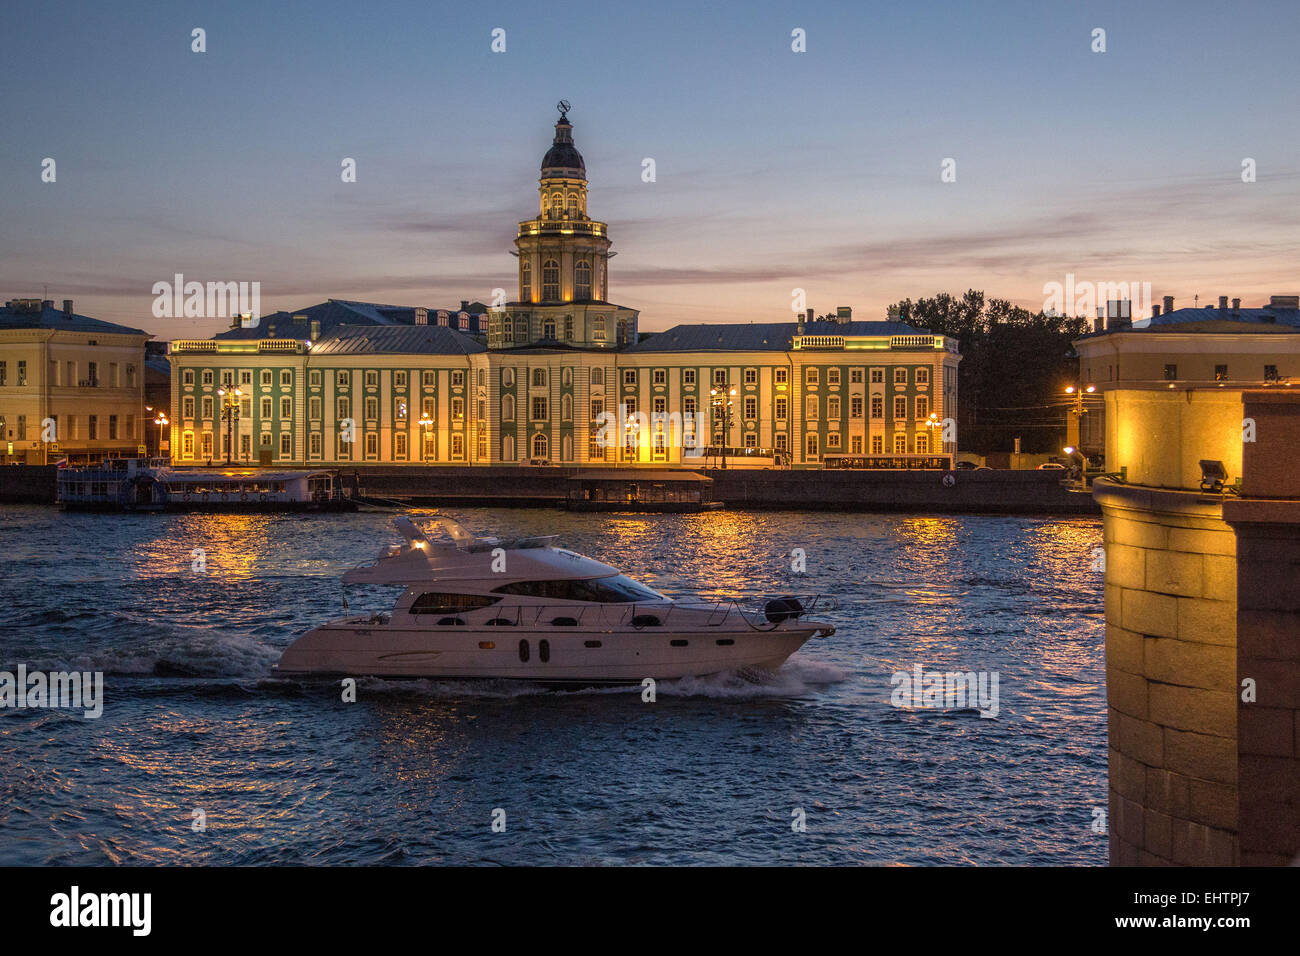 ILLUSTRATION OF THE CITY OF SAINT PETERSBURG, RUSSIA - Stock Image